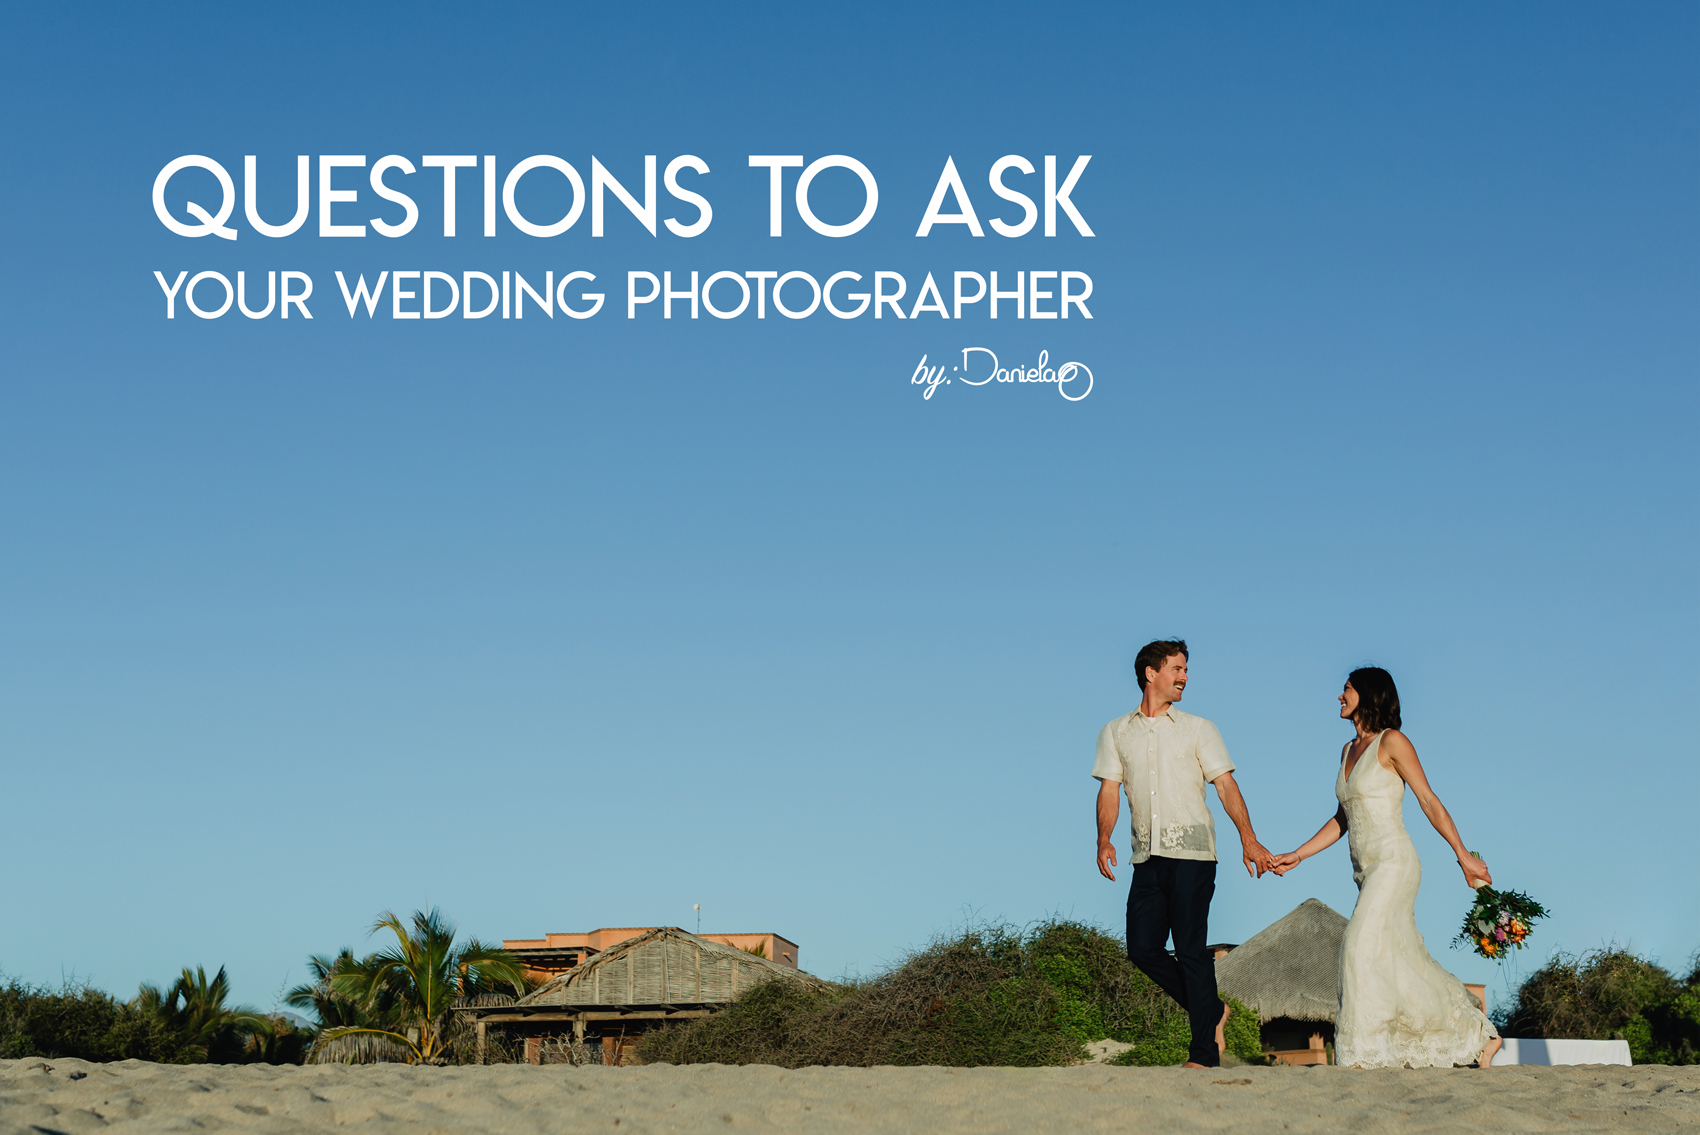 Questions for your potential wedding photographer